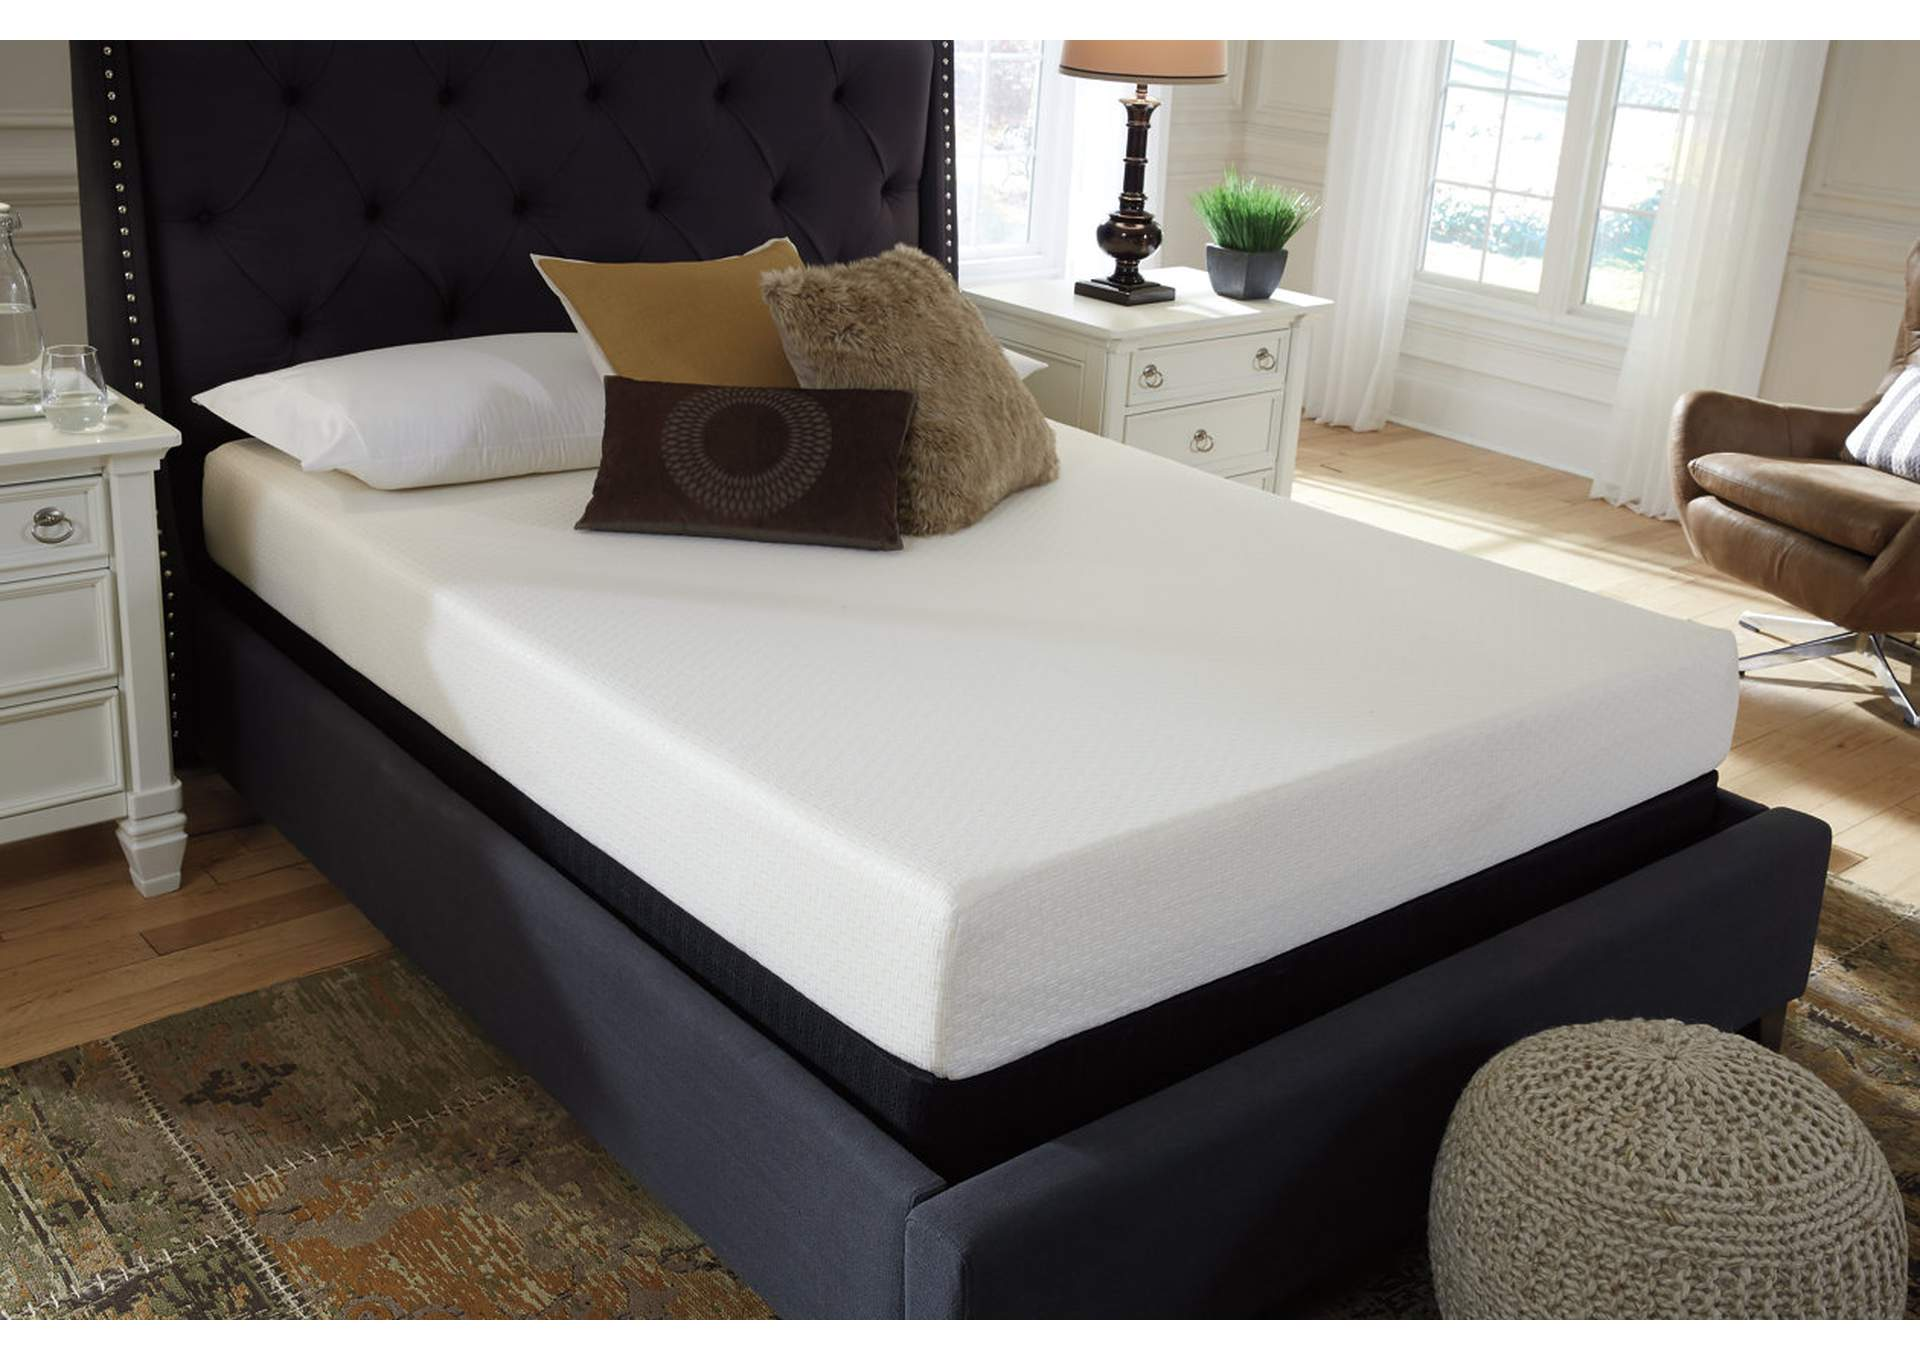 Chime 8 Inch Memory Foam King Mattress in a Box,Sierra Sleep by Ashley